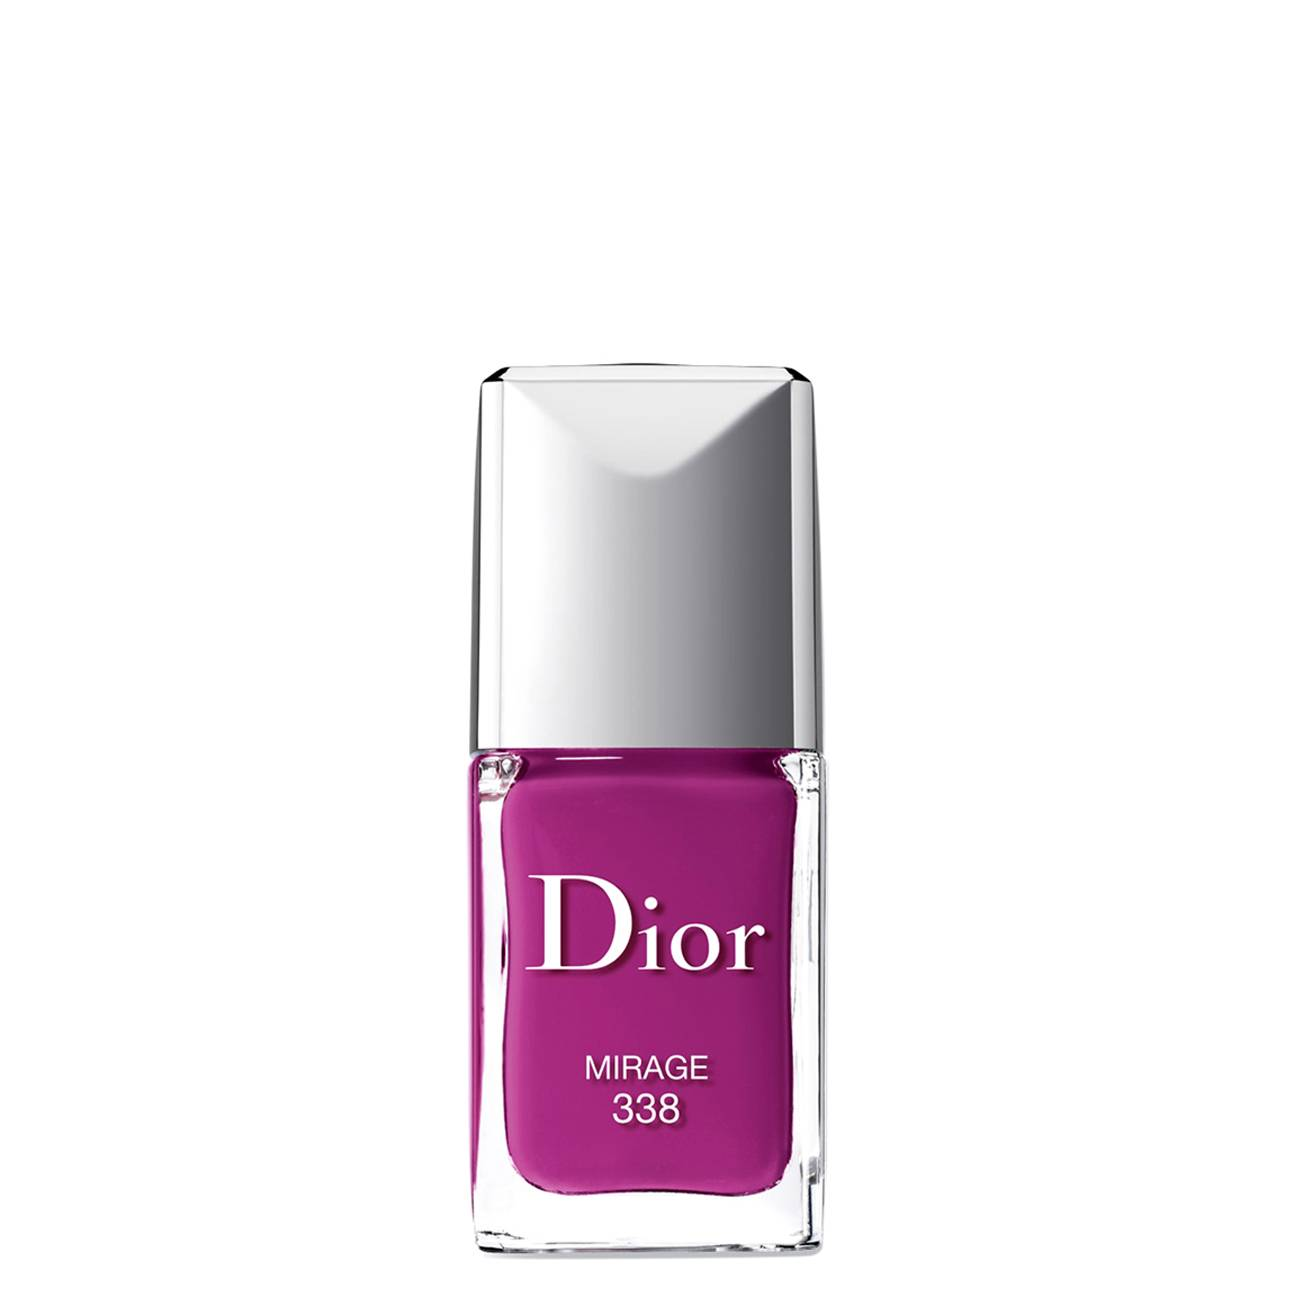 Vernis 338 10 Ml Dior imagine 2021 bestvalue.eu